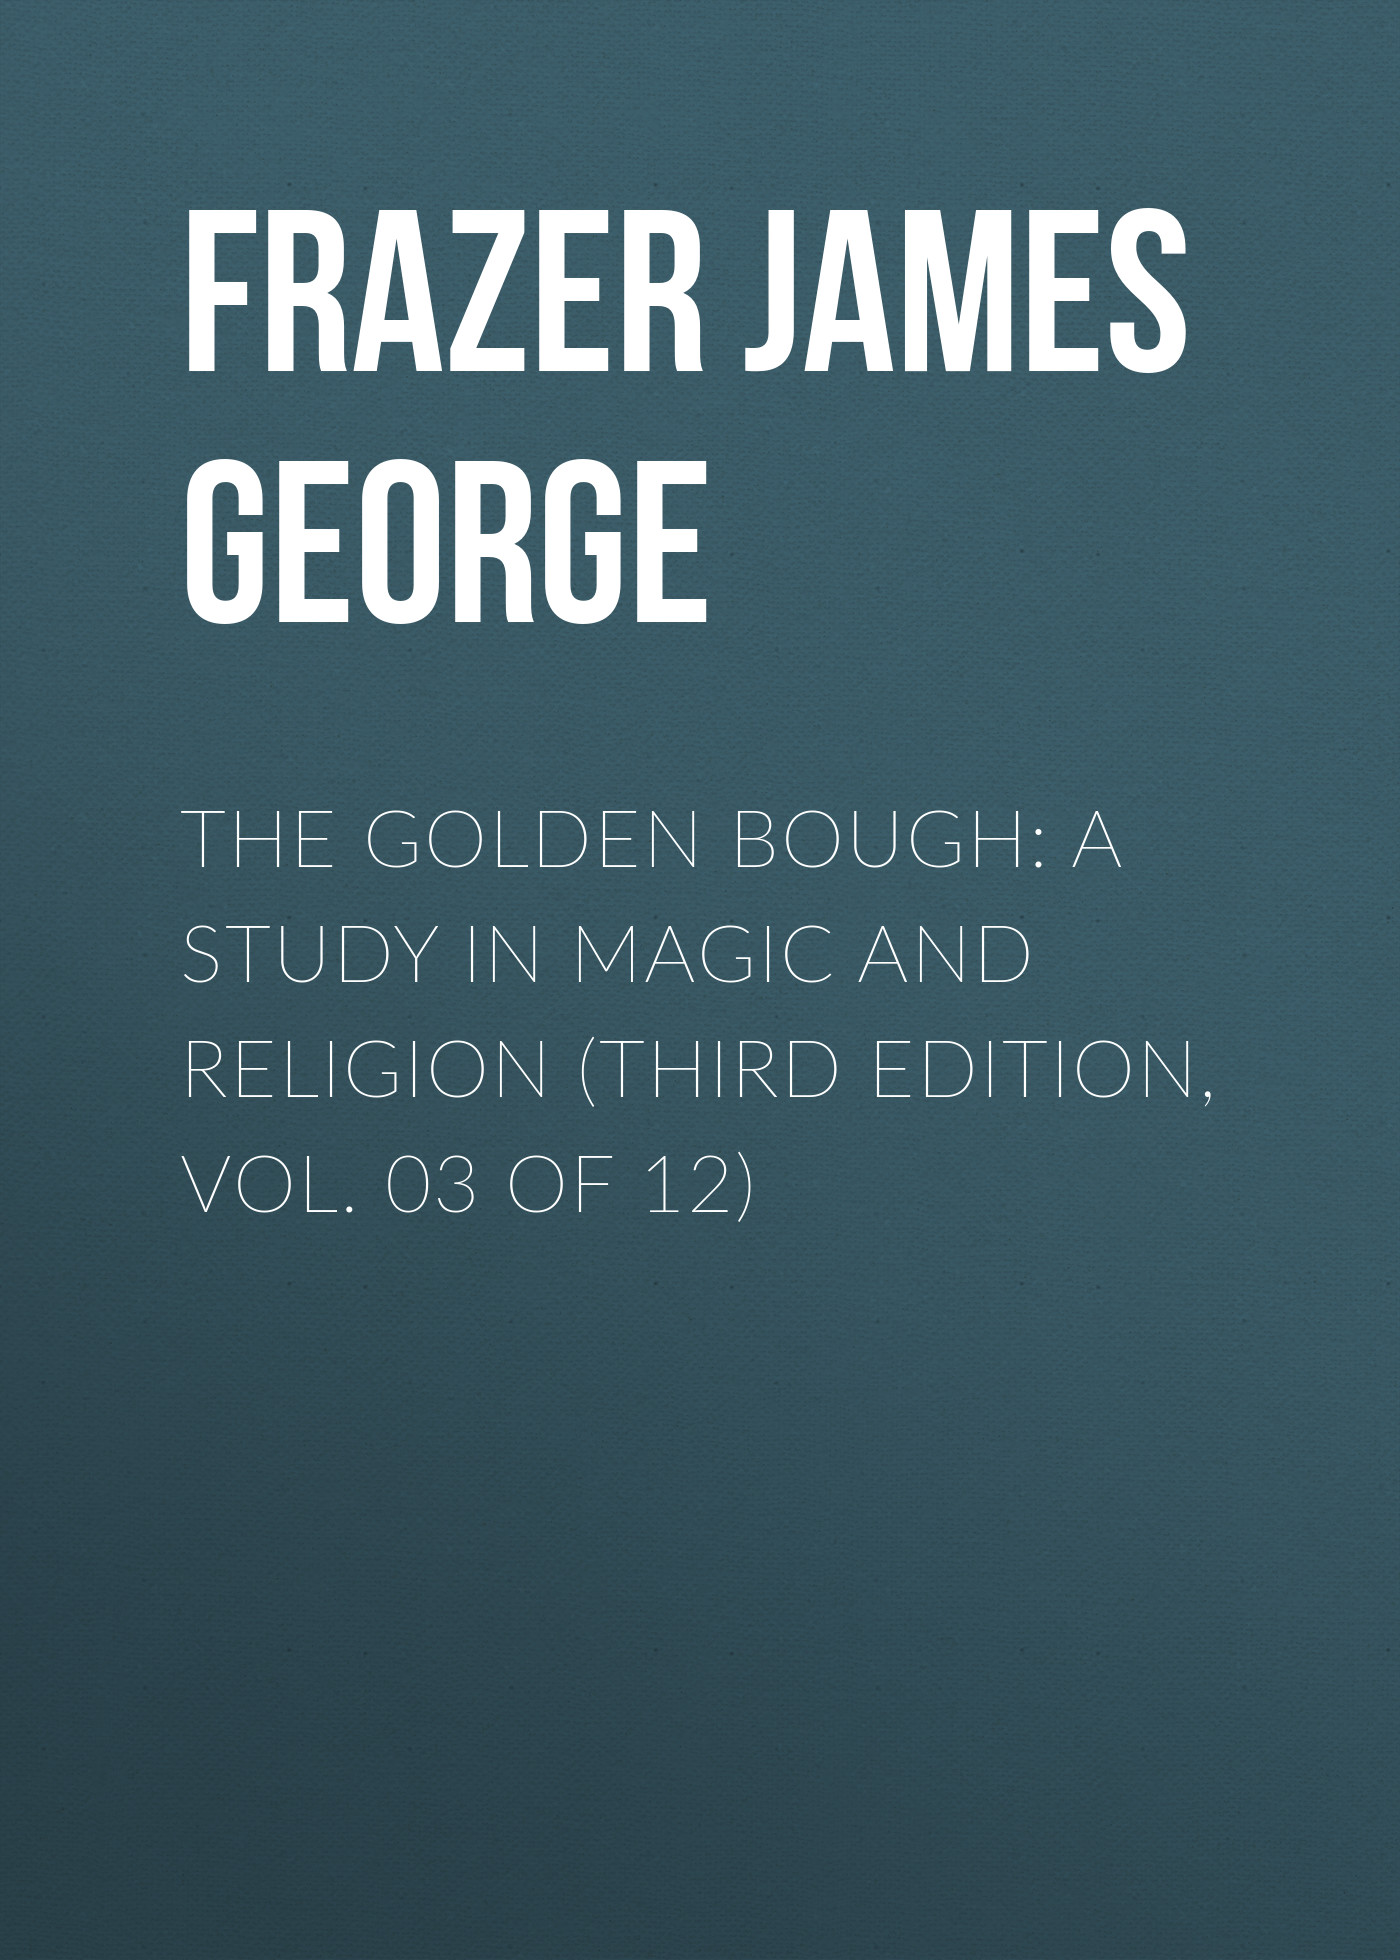 Frazer James George The Golden Bough: A Study in Magic and Religion (Third Edition, Vol. 03 of 12)